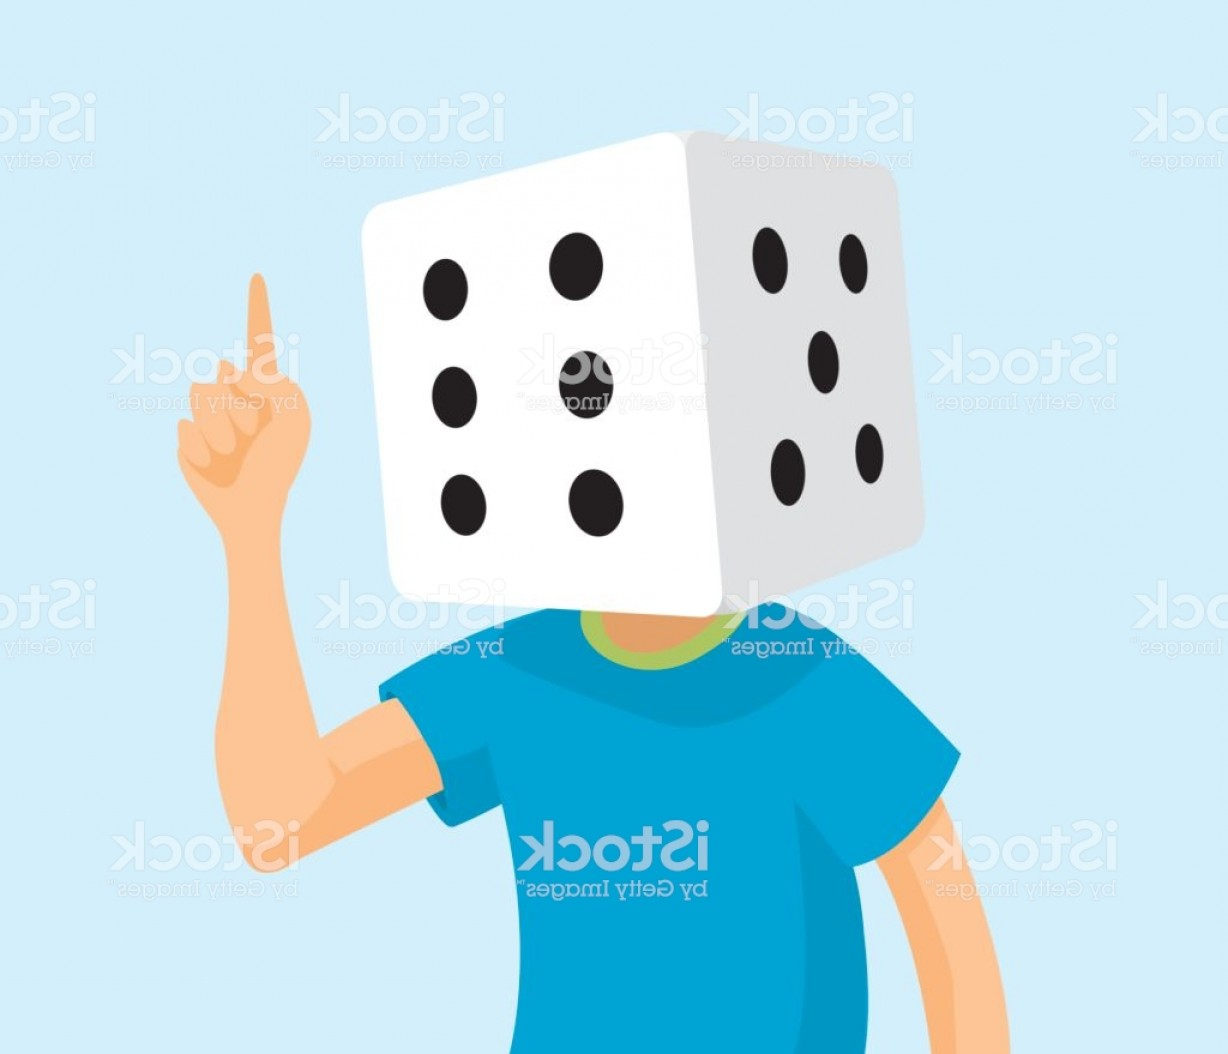 Gambler Vector Art Images: Gambler Dice Head With Game Thoughts Gm